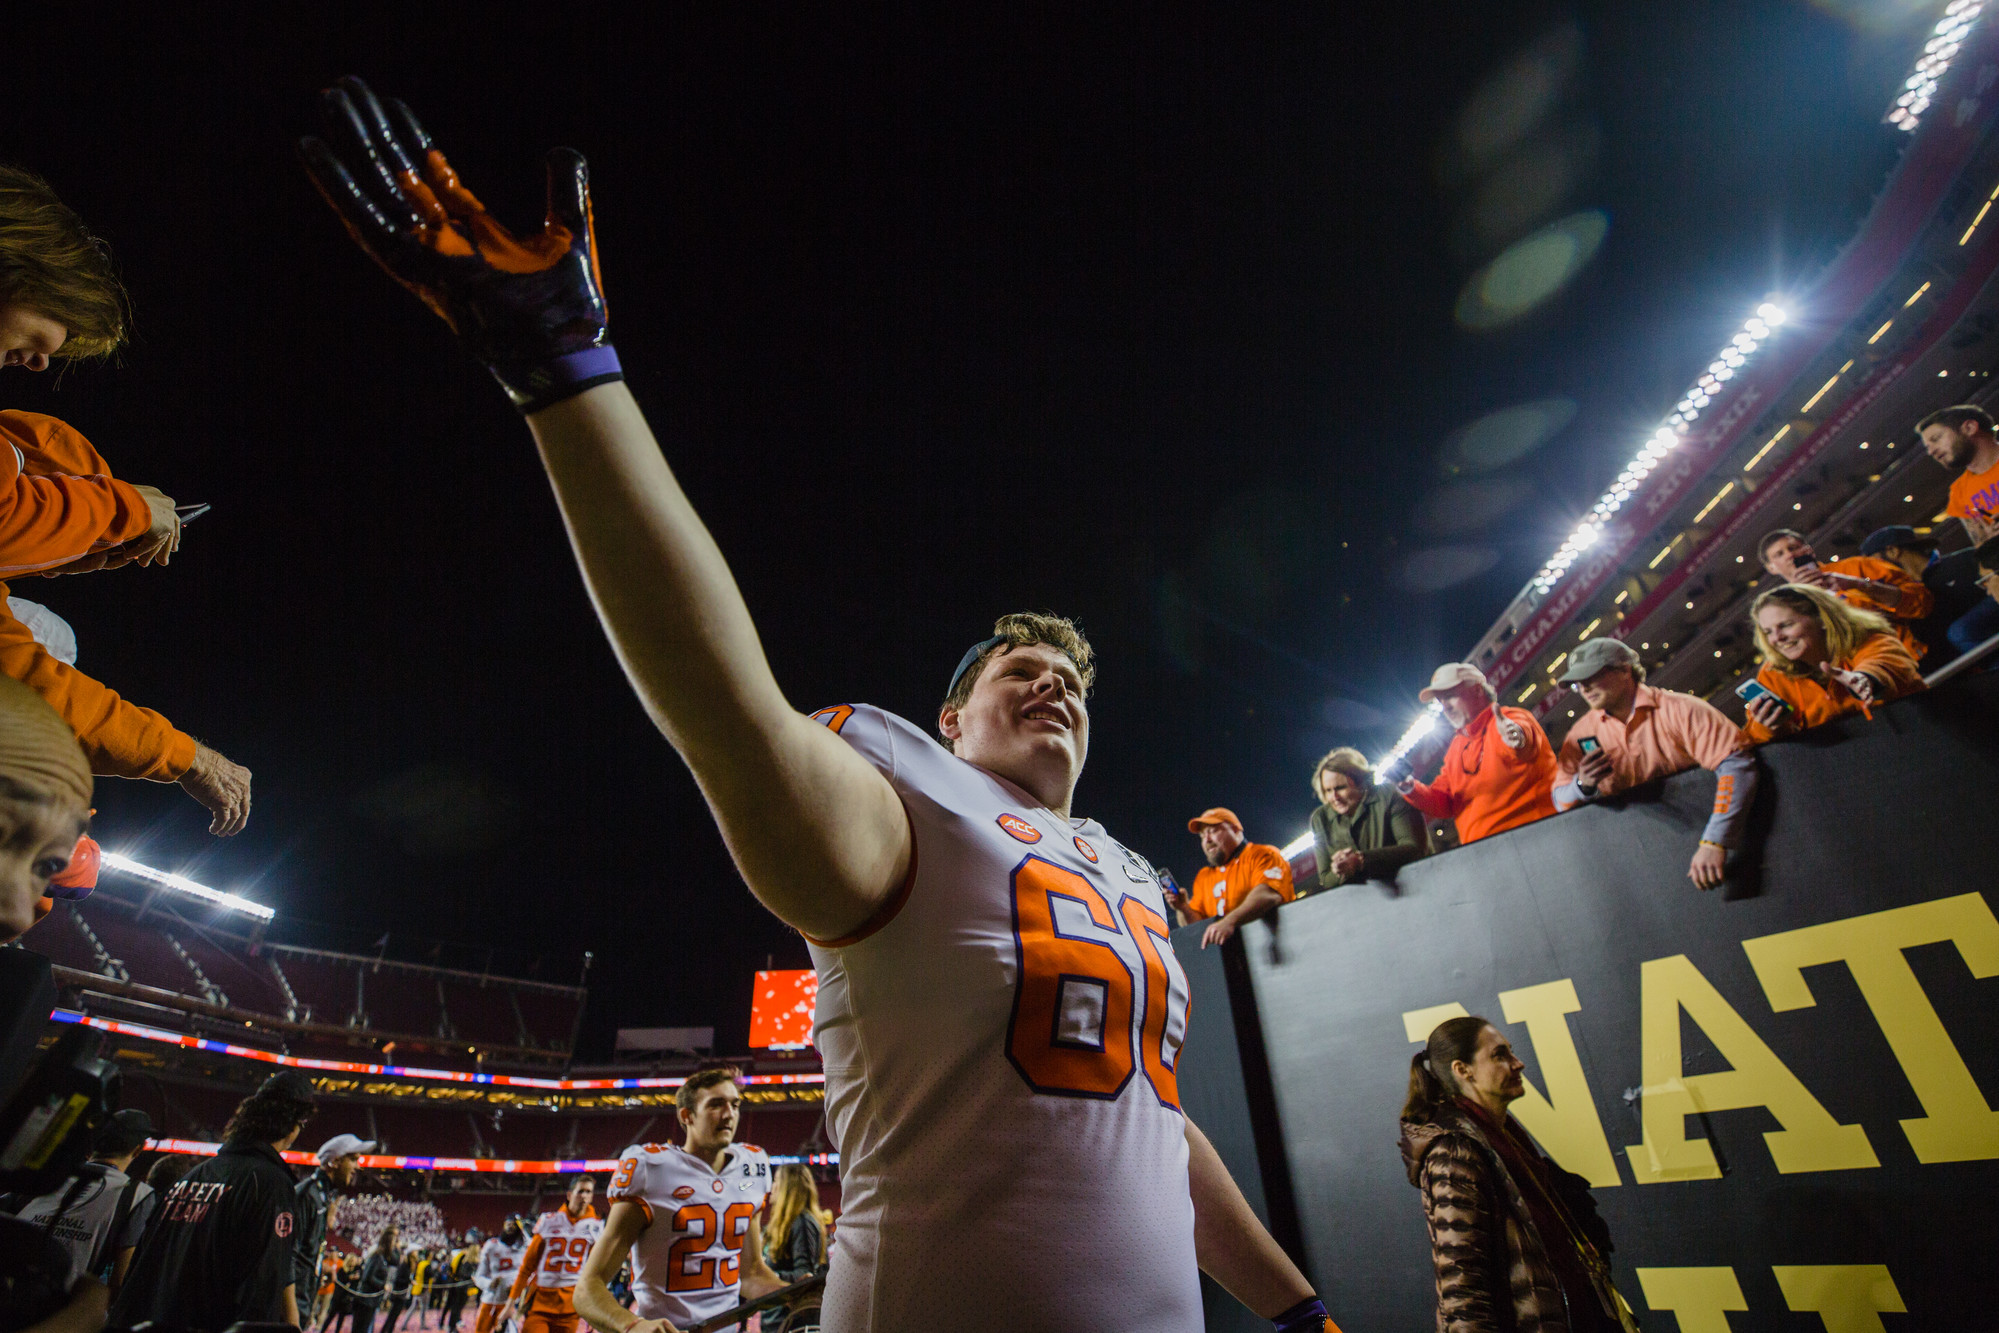 Clemson offensive lineman Bobby Gettys celebrates exits Levi's Stadium in Santa Clara, California, on Monday, Jan. 7 after routing Alabama 44-16 to win the 2019 CFP National Championship.